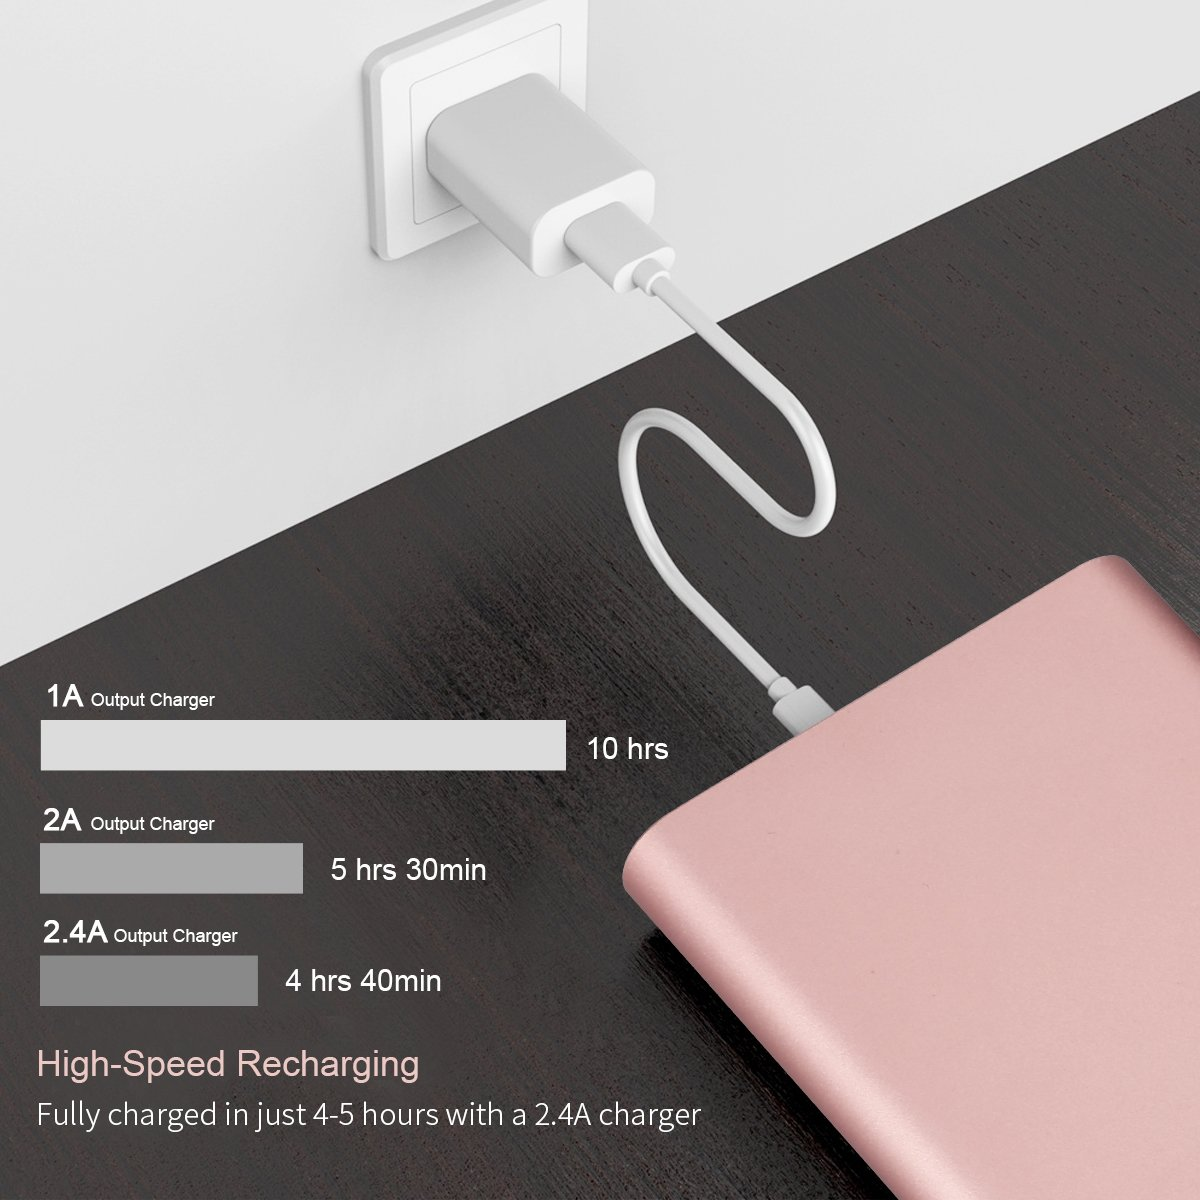 FLOUREON 12,000mAh Lighting Power Bank Portable Phone Charger External Battery Charger with High-Speed Lighting Type C Input/Output, 3A Fast Charging for iPhone 8/ 8 Plus/ X/ 7/ 6s, iPad and Samsung Galaxy S8/ S7/ S6 and More (Rose Gold)